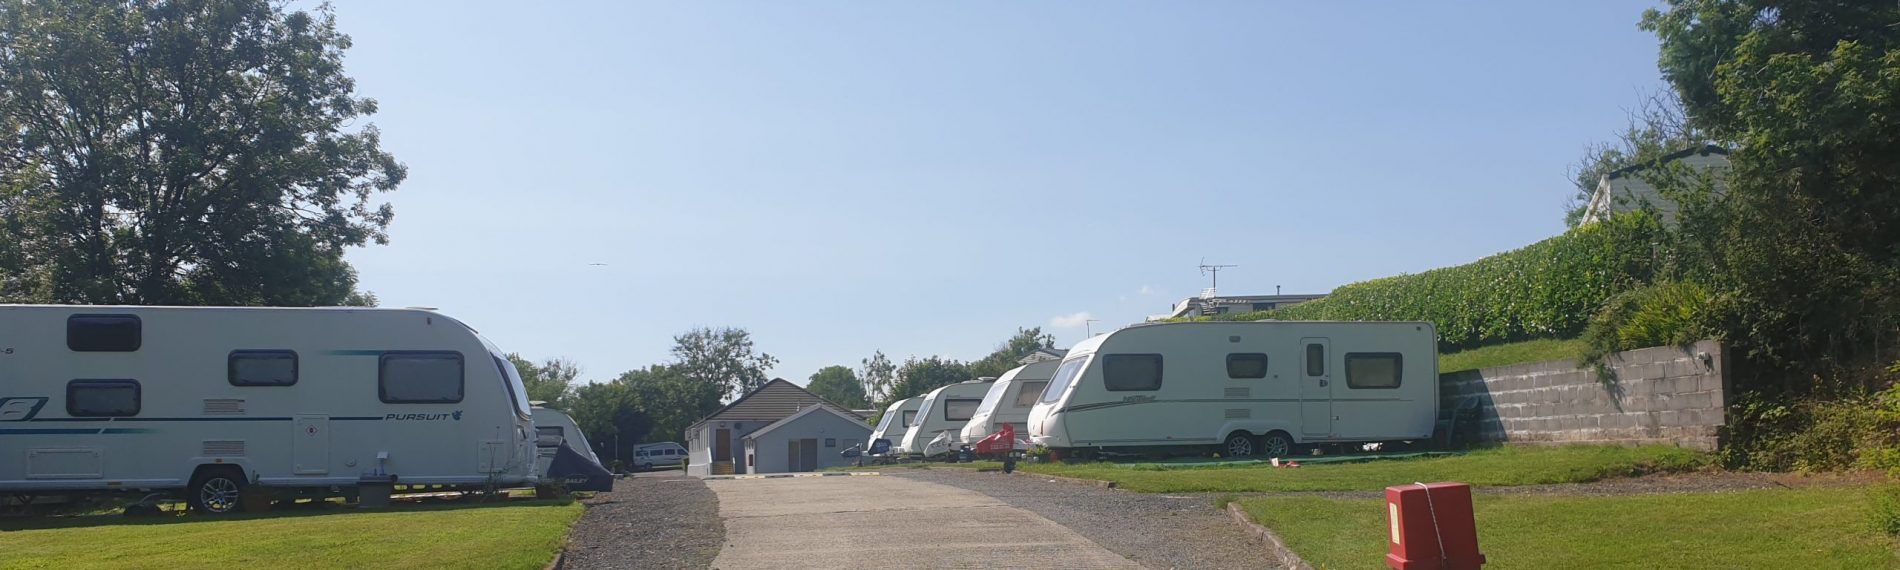 https://www.redfordcaravanpark.co.uk/wp-content/uploads/2021/02/All-of-the-scaled-1-aspect-ratio-1900-570.jpg